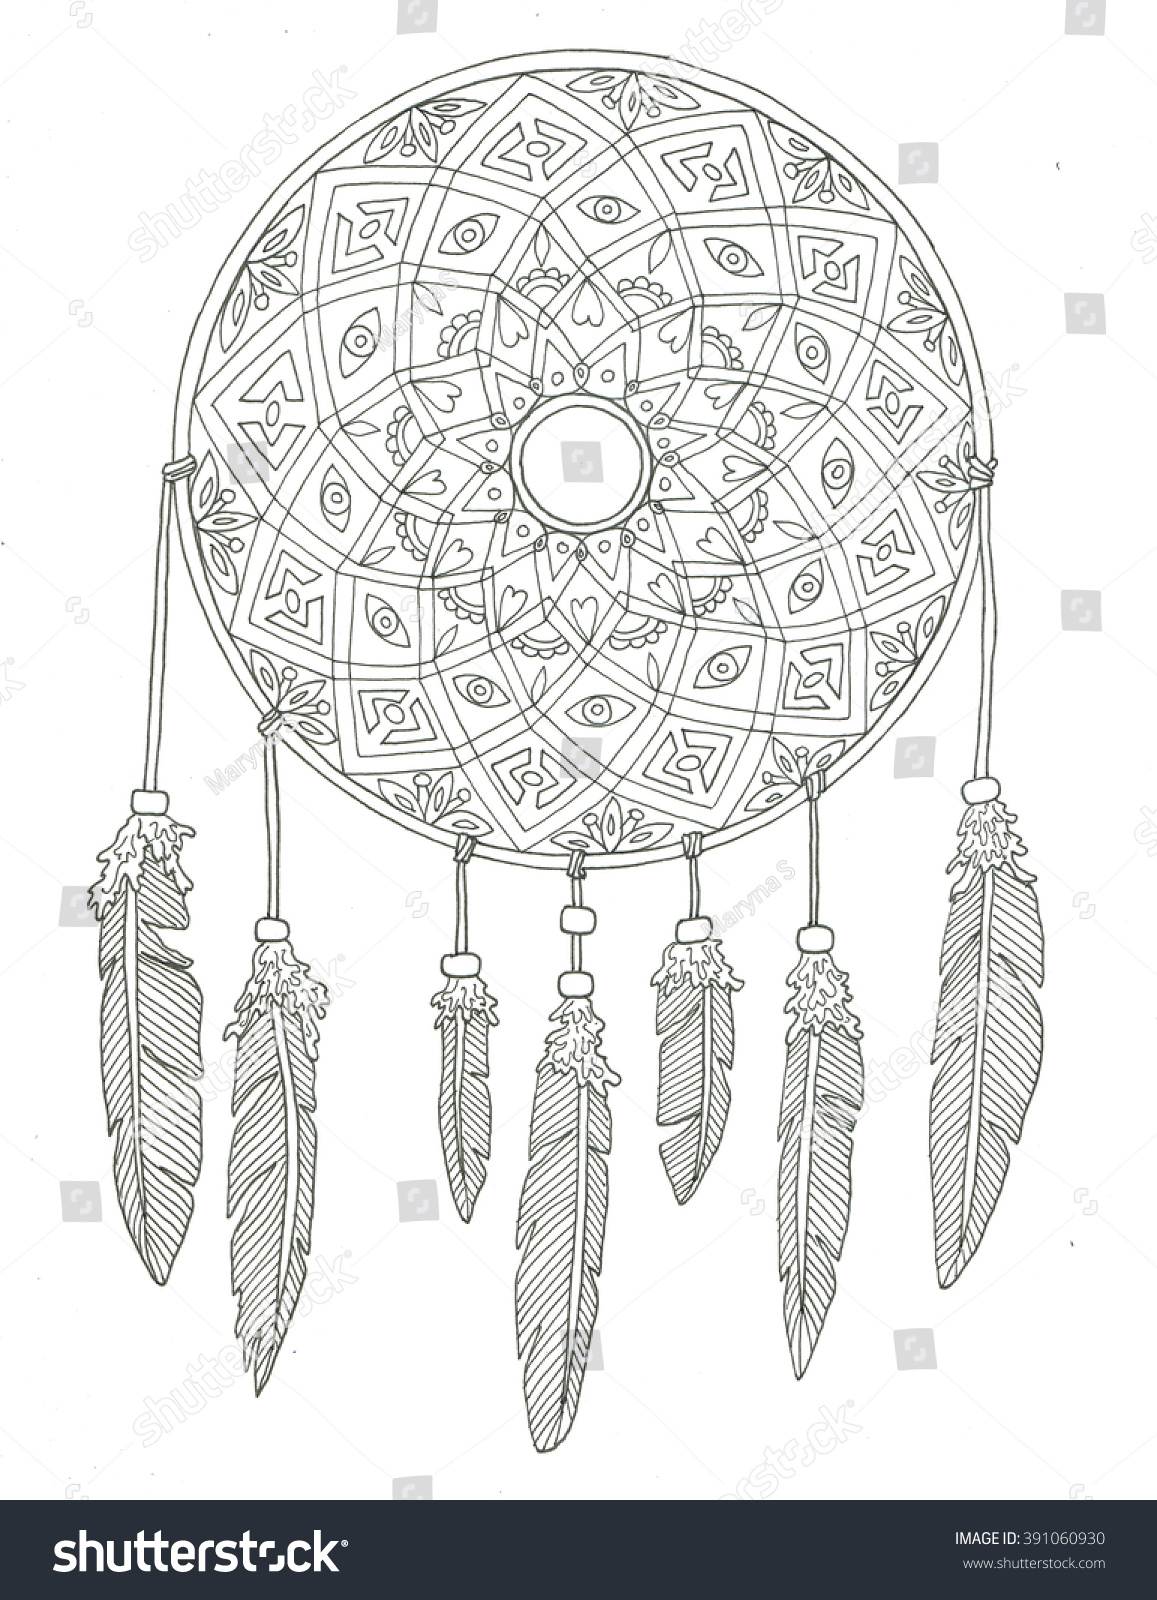 Stunning Dream Catcher Coloring Pages Ideas New Printable